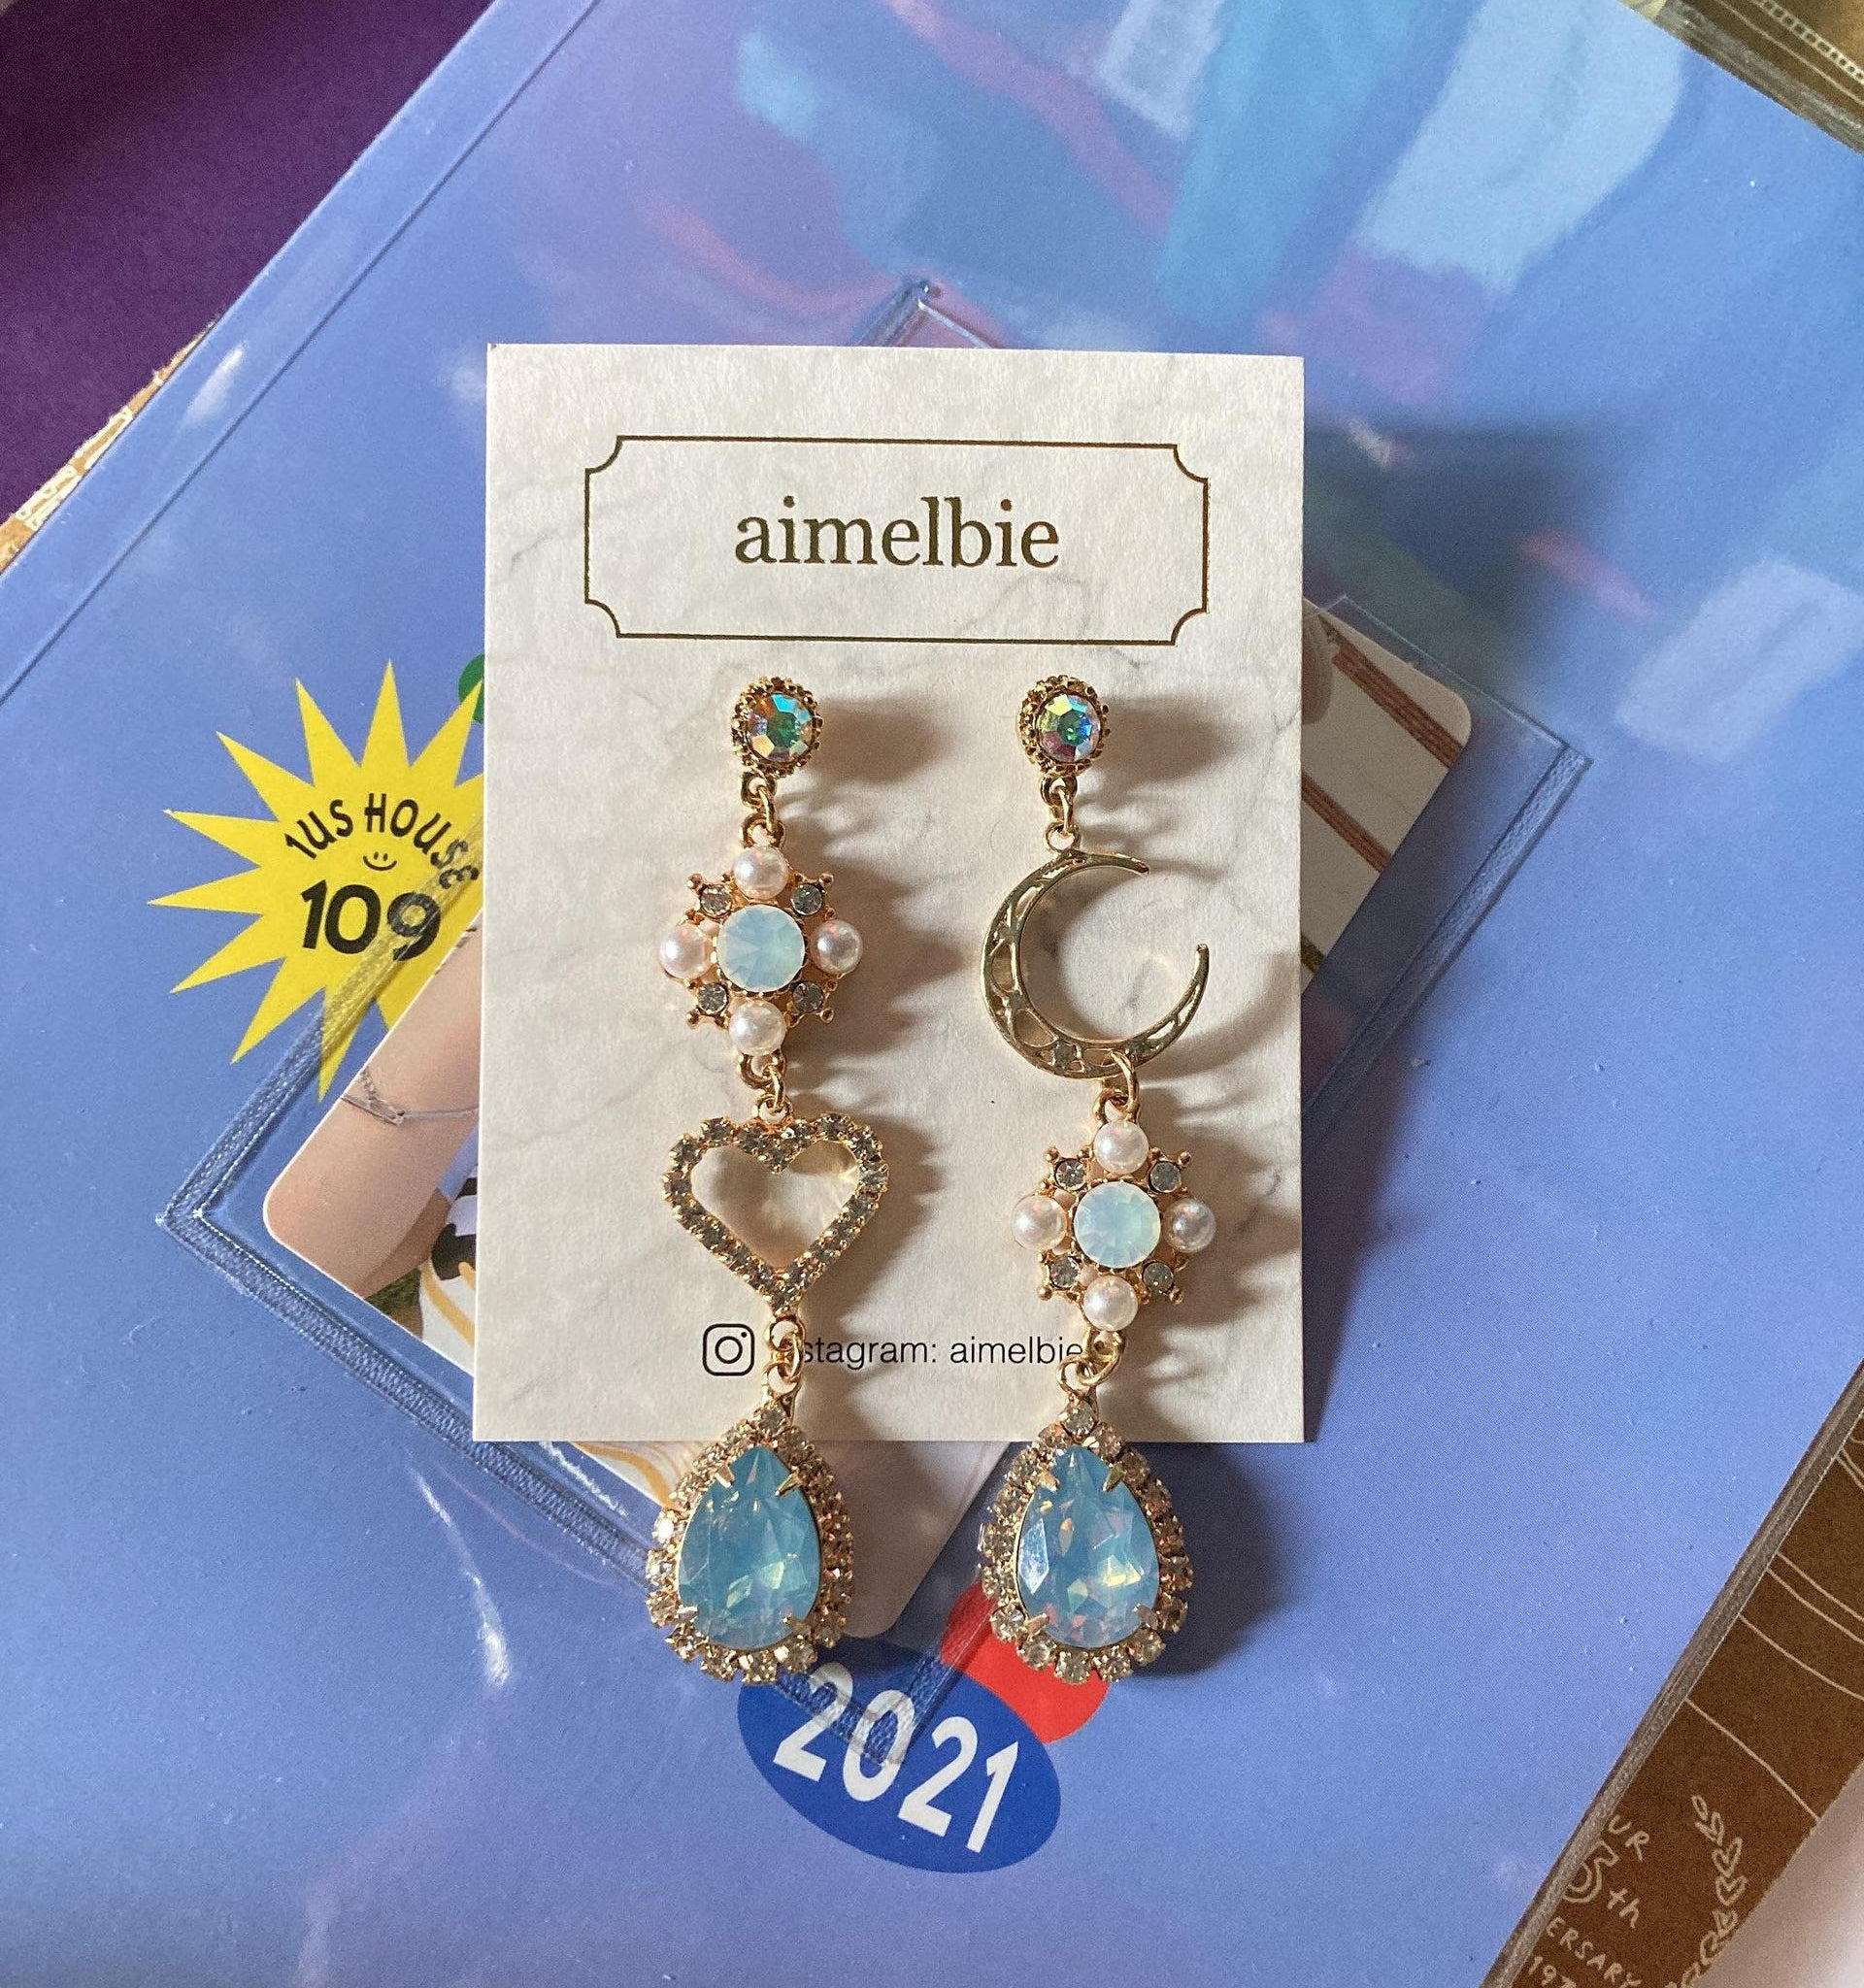 coordinating gold dangly earrings with light blue stones, one with a heart and one with a moon